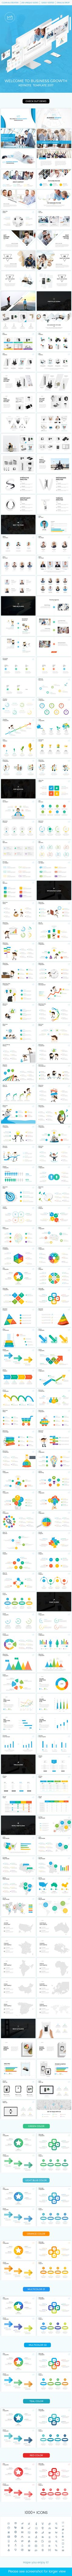 Business Growth Keynote Template